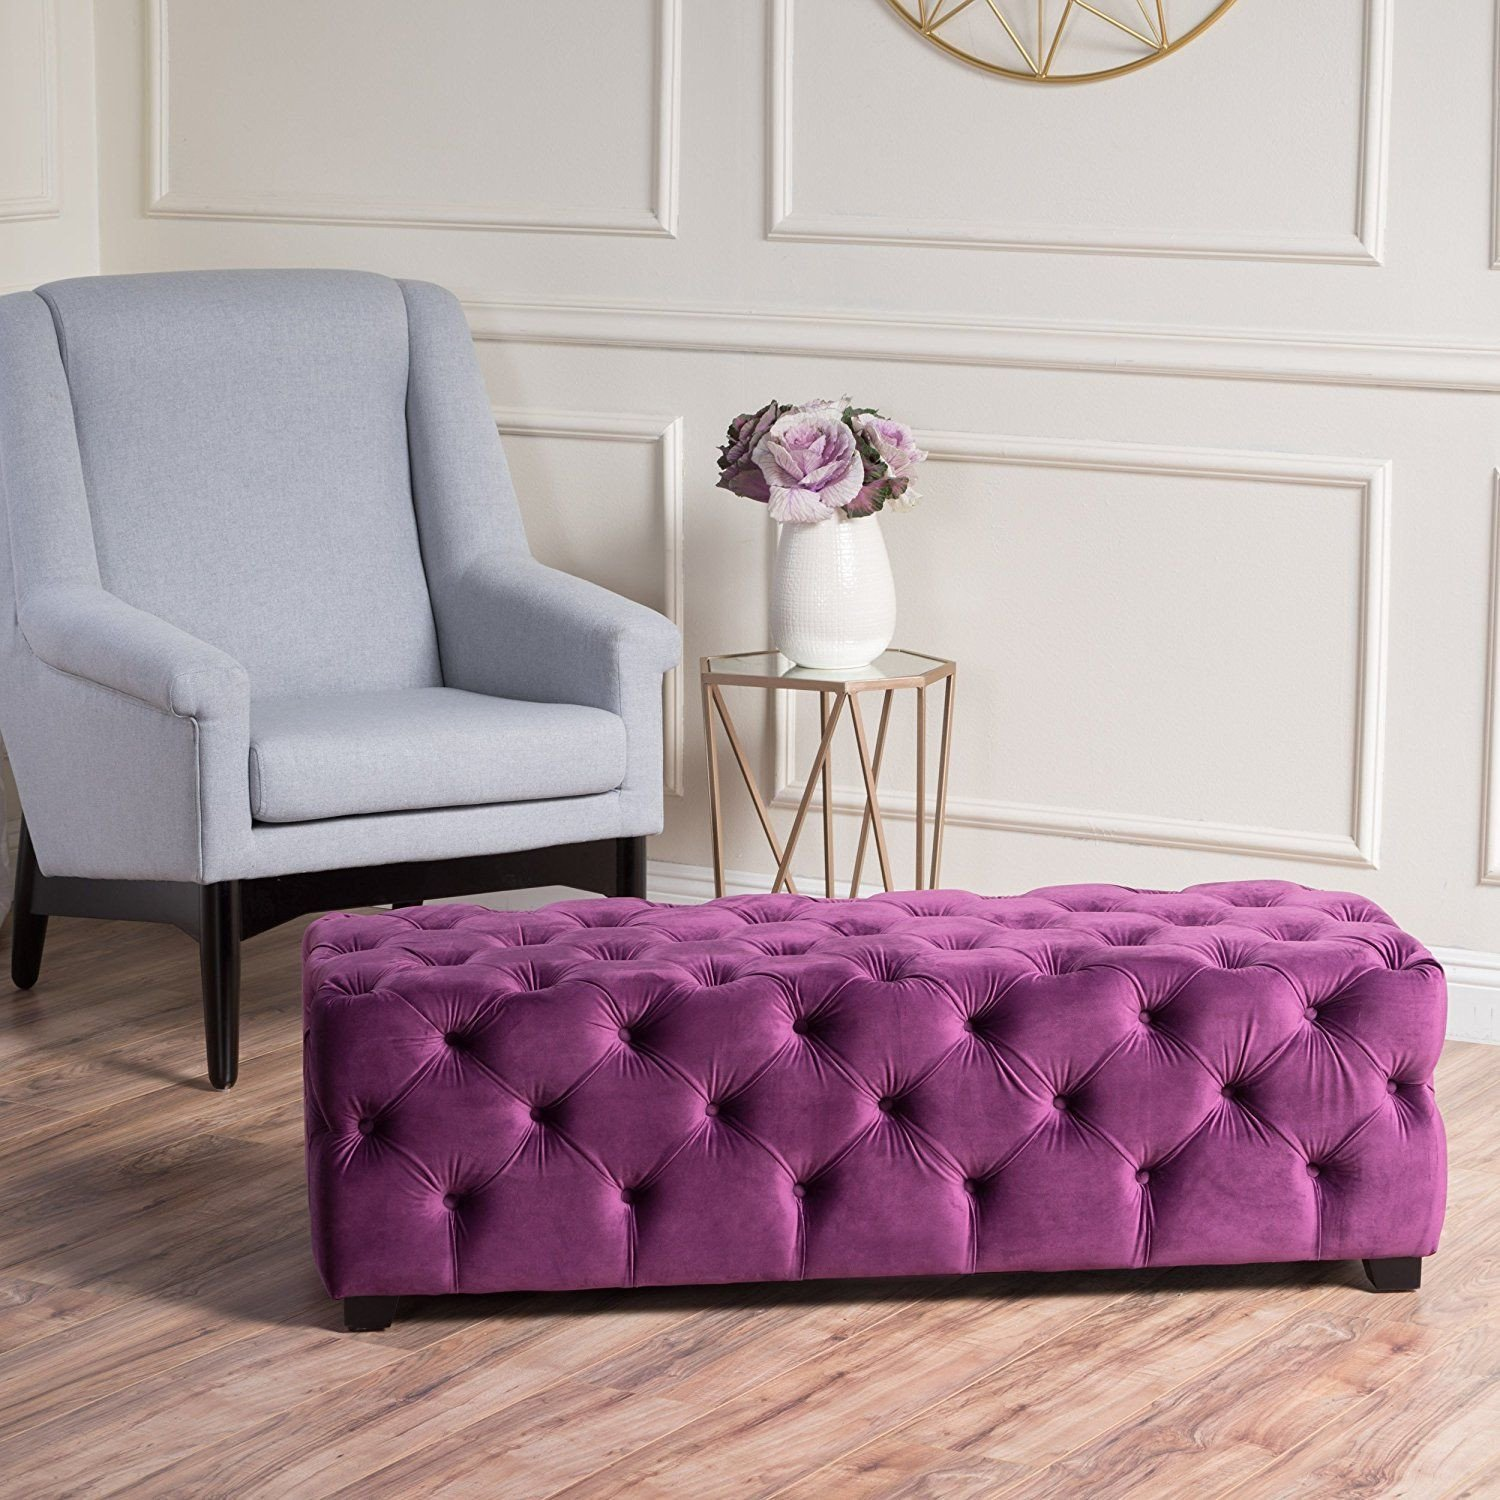 Bedroom Chair with Ottoman Best Of Provence Purple Tufted Velvet Fabric Rectangle Ottoman Bench